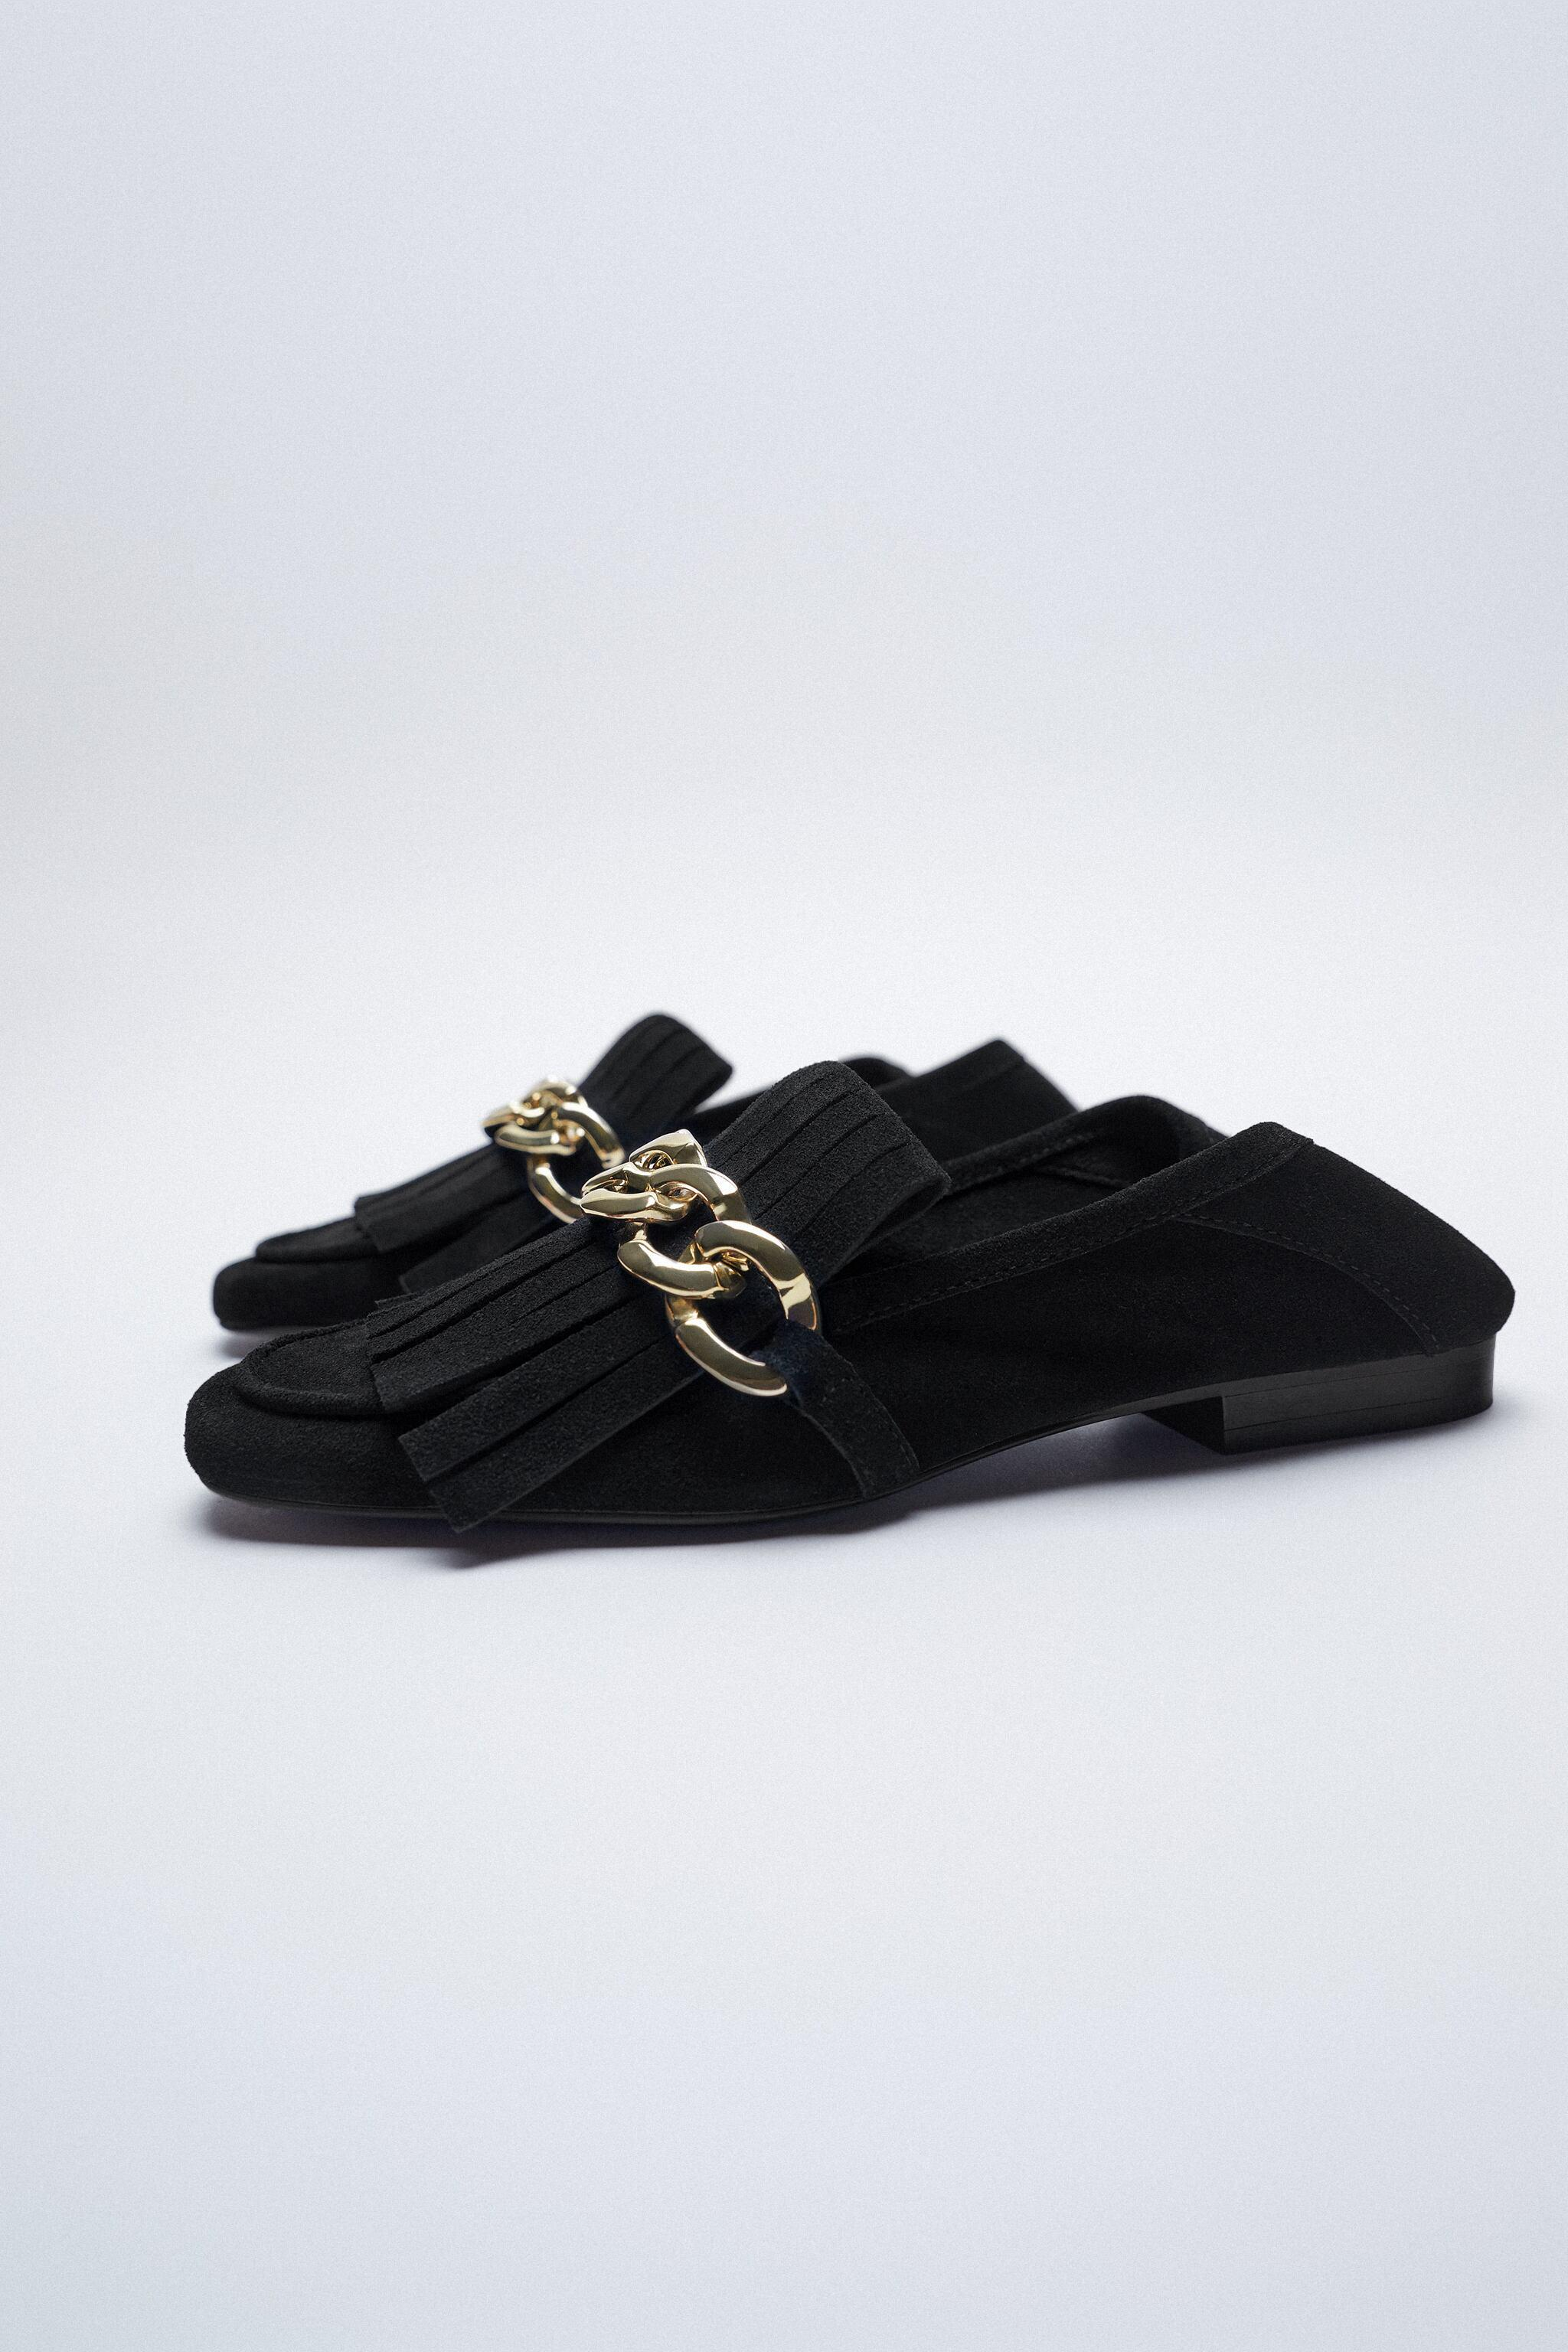 FRINGED SPLIT LEATHER MOCCASINS WITH CHAIN 7